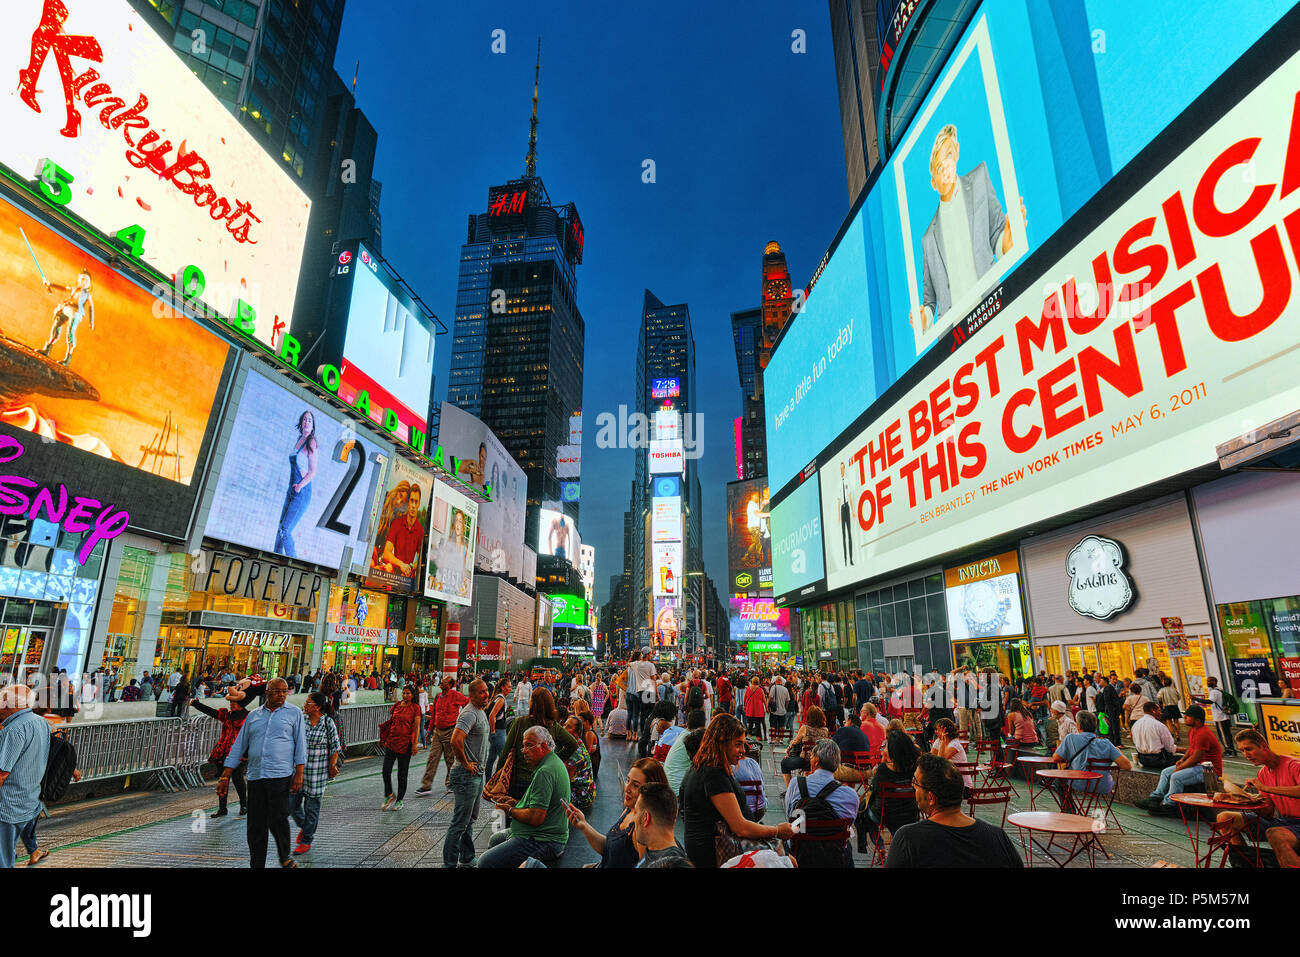 New York, USA- September 06, 2017 : Night view of Times Square-central and main square of New York. Street, cars, people and tourists on it. - Stock Image